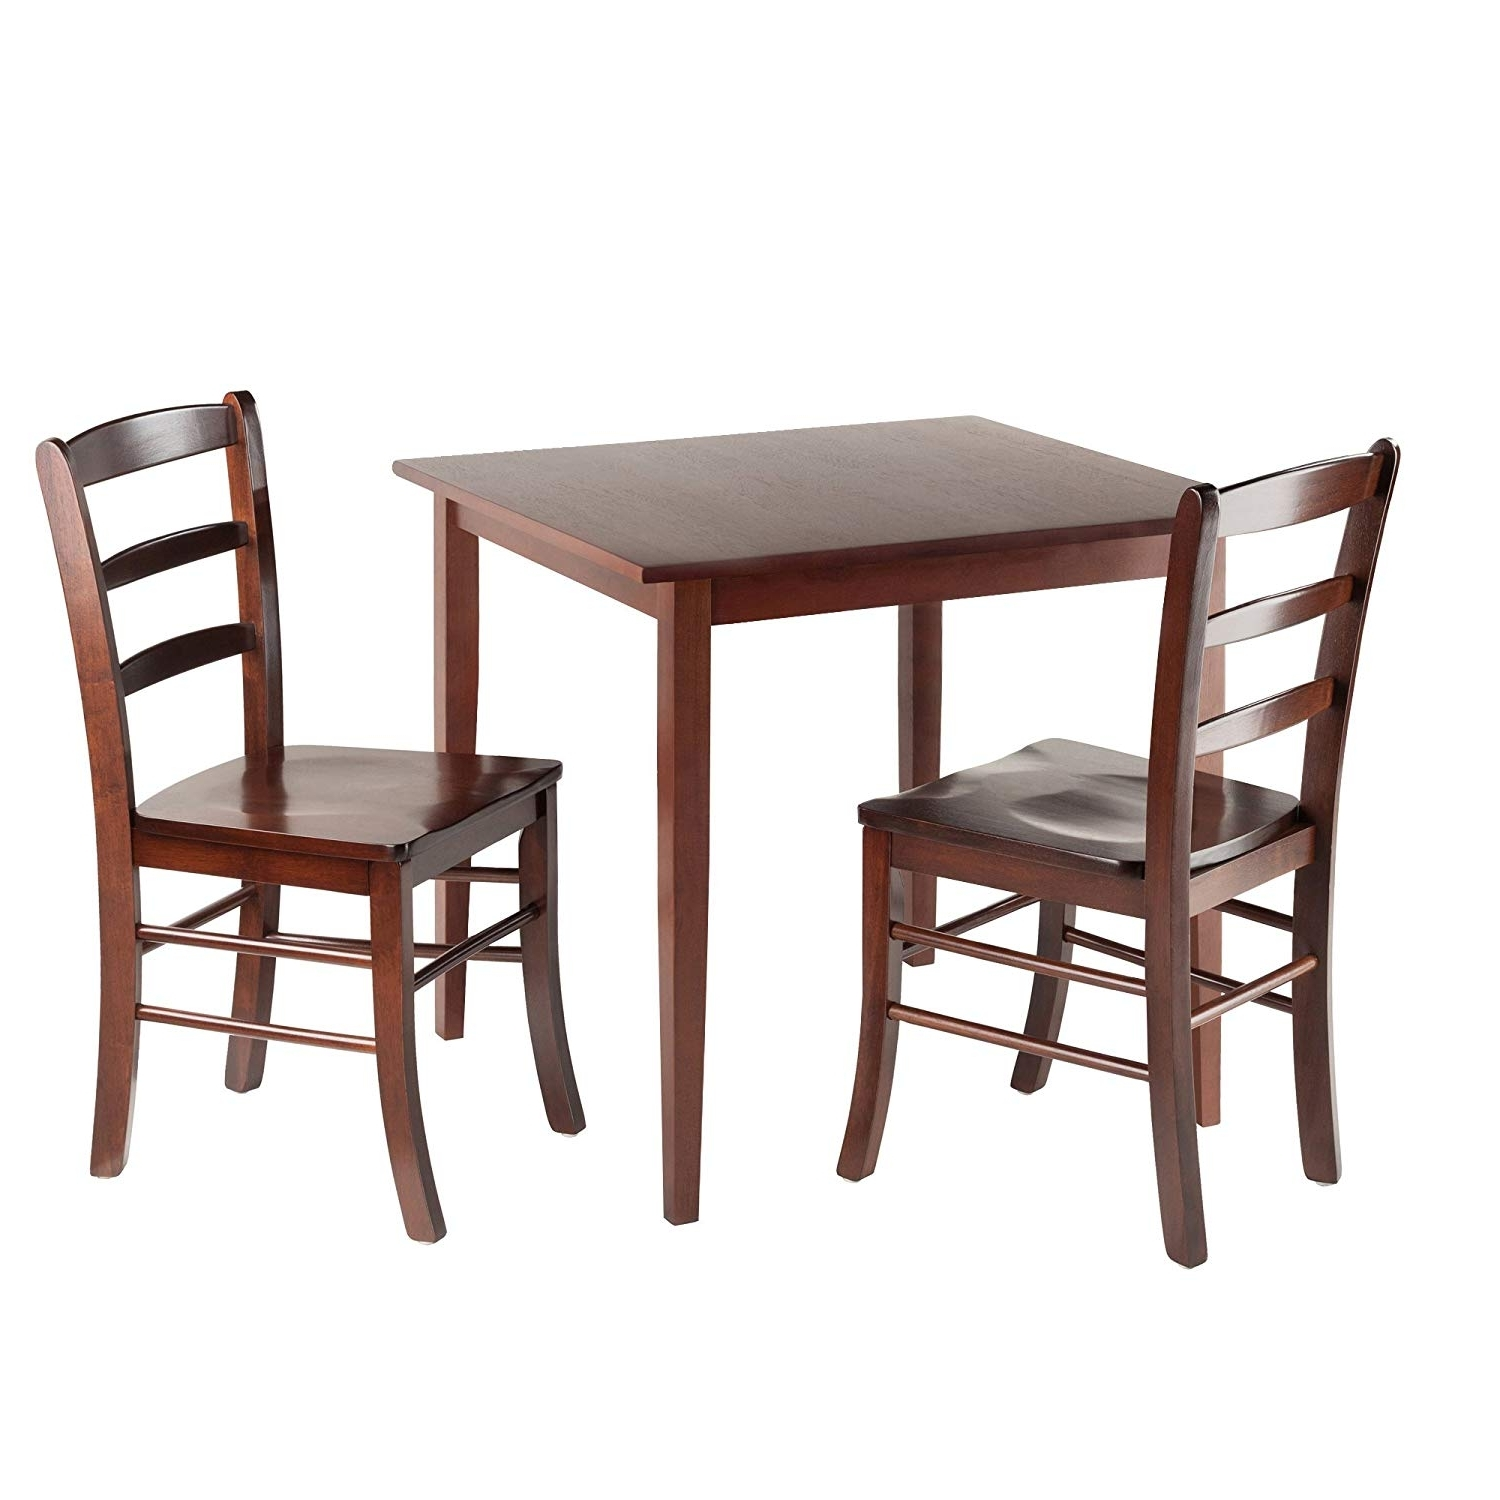 Amazon – Winsome Groveland Square Dining Table With 2 Chairs, 3 For 2018 Small Dining Tables For 2 (Gallery 1 of 25)